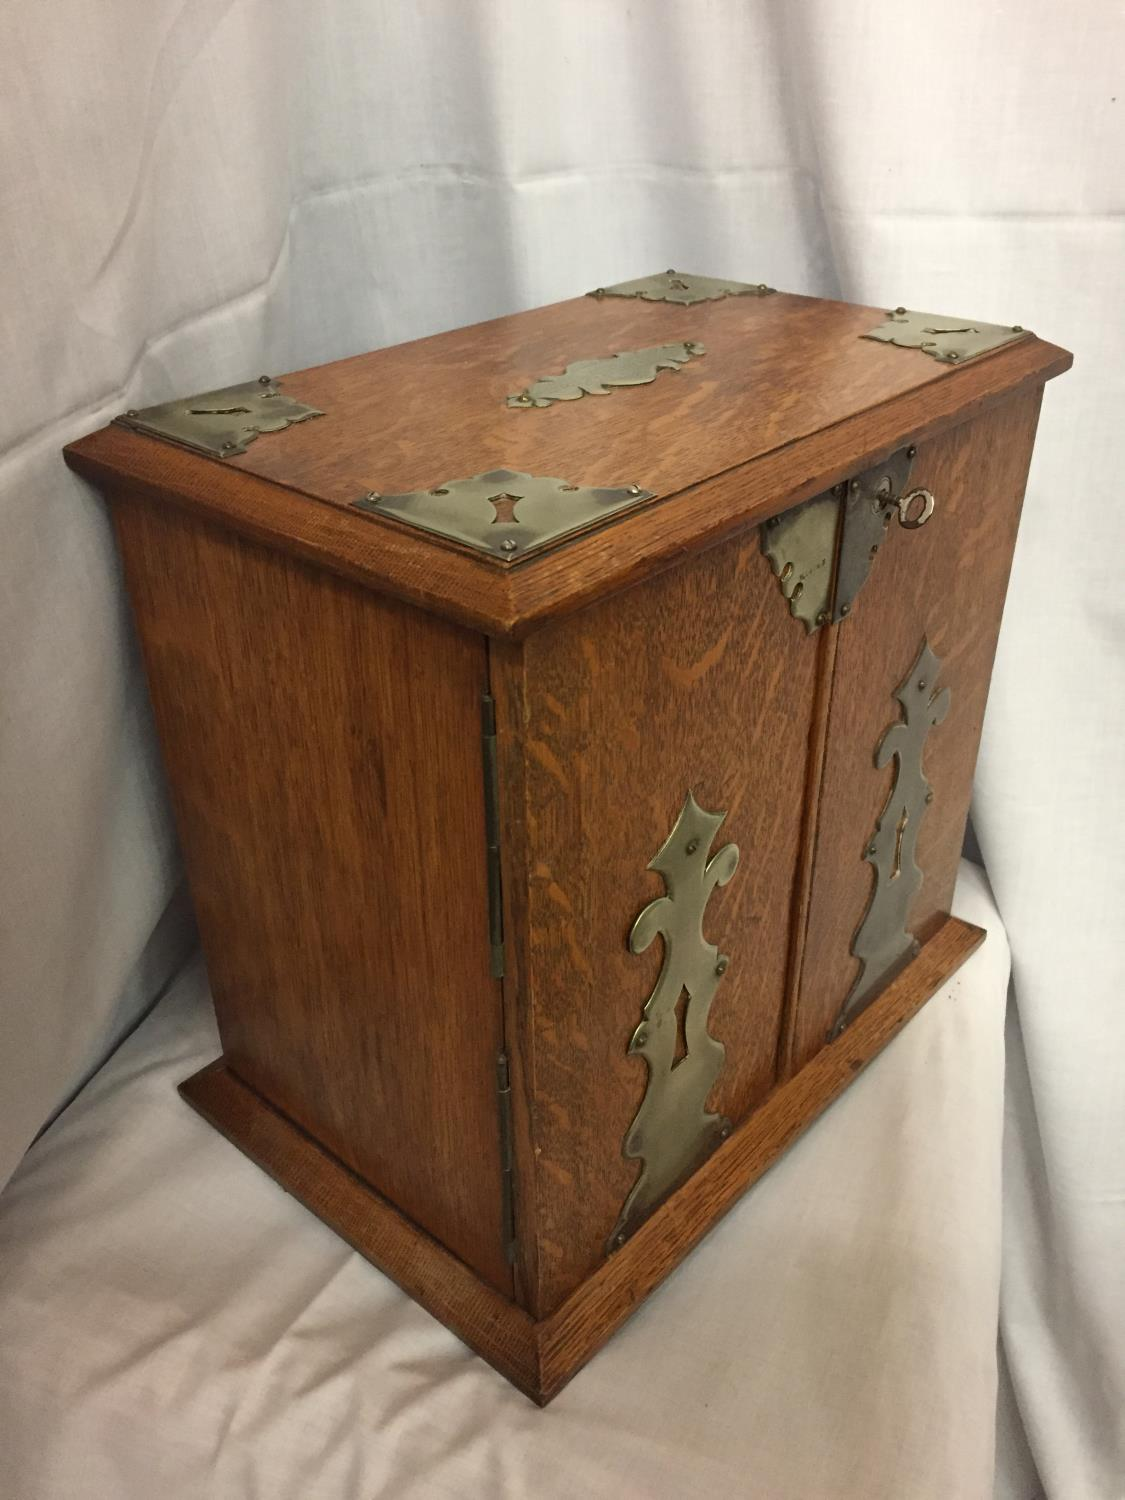 AN EDWARDIAN OAK SMOKING ROOM COMPENDIUM DATED 1921 HEIGHT 32CM - Image 4 of 4